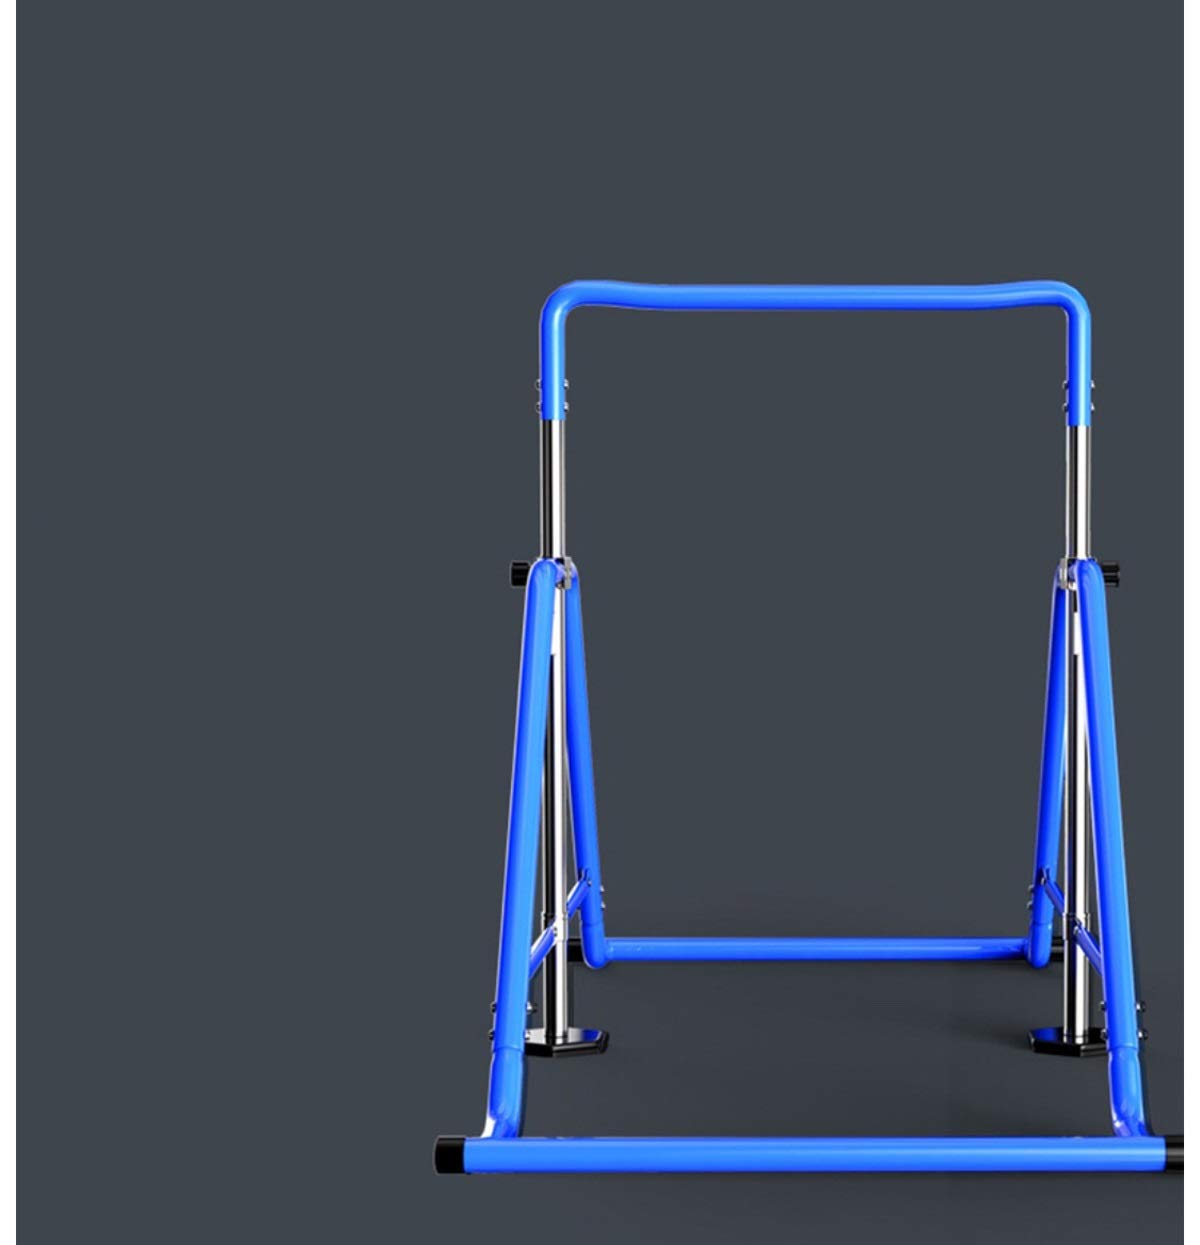 Baianju Indoor Horizontal Bar Household Foldable Pull-ups Rolling Belly Flippers Stretch Lift Training Fitness Equipment Sports Goods by Baianju